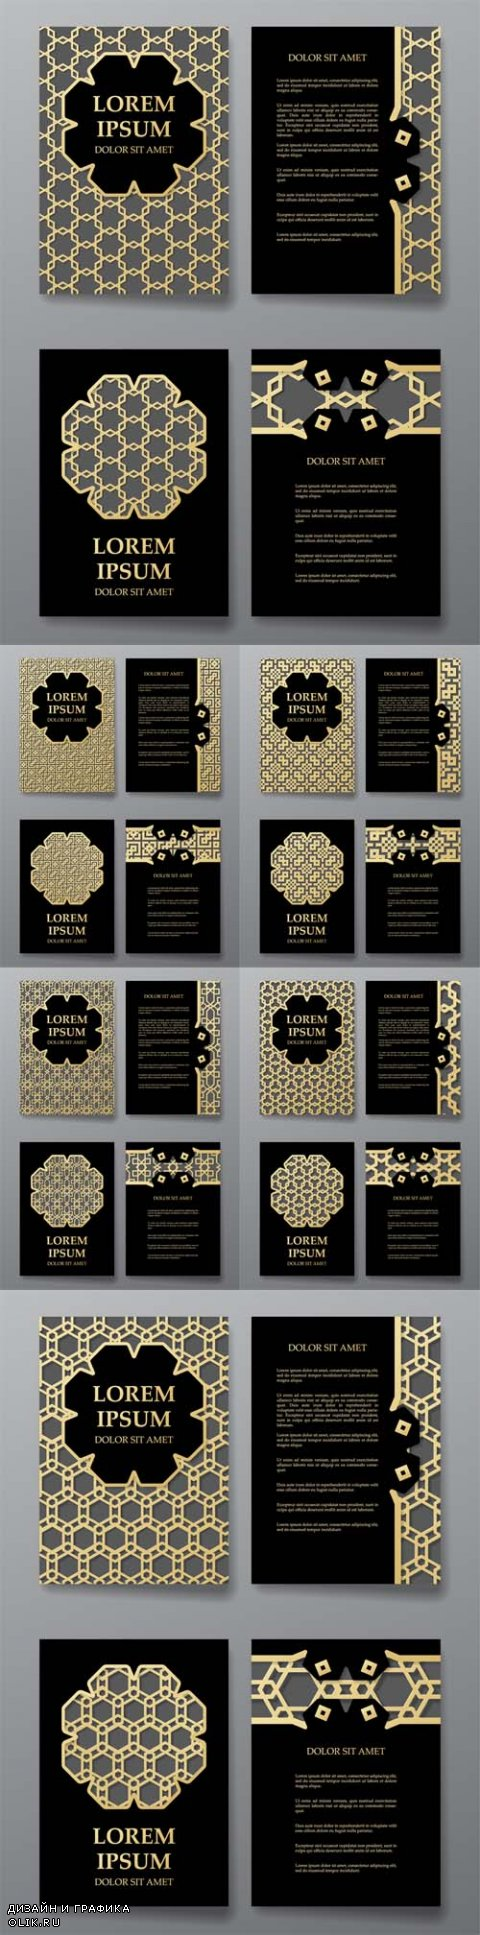 Vector Cover brochure gold design. Arabic traditional decorative elements